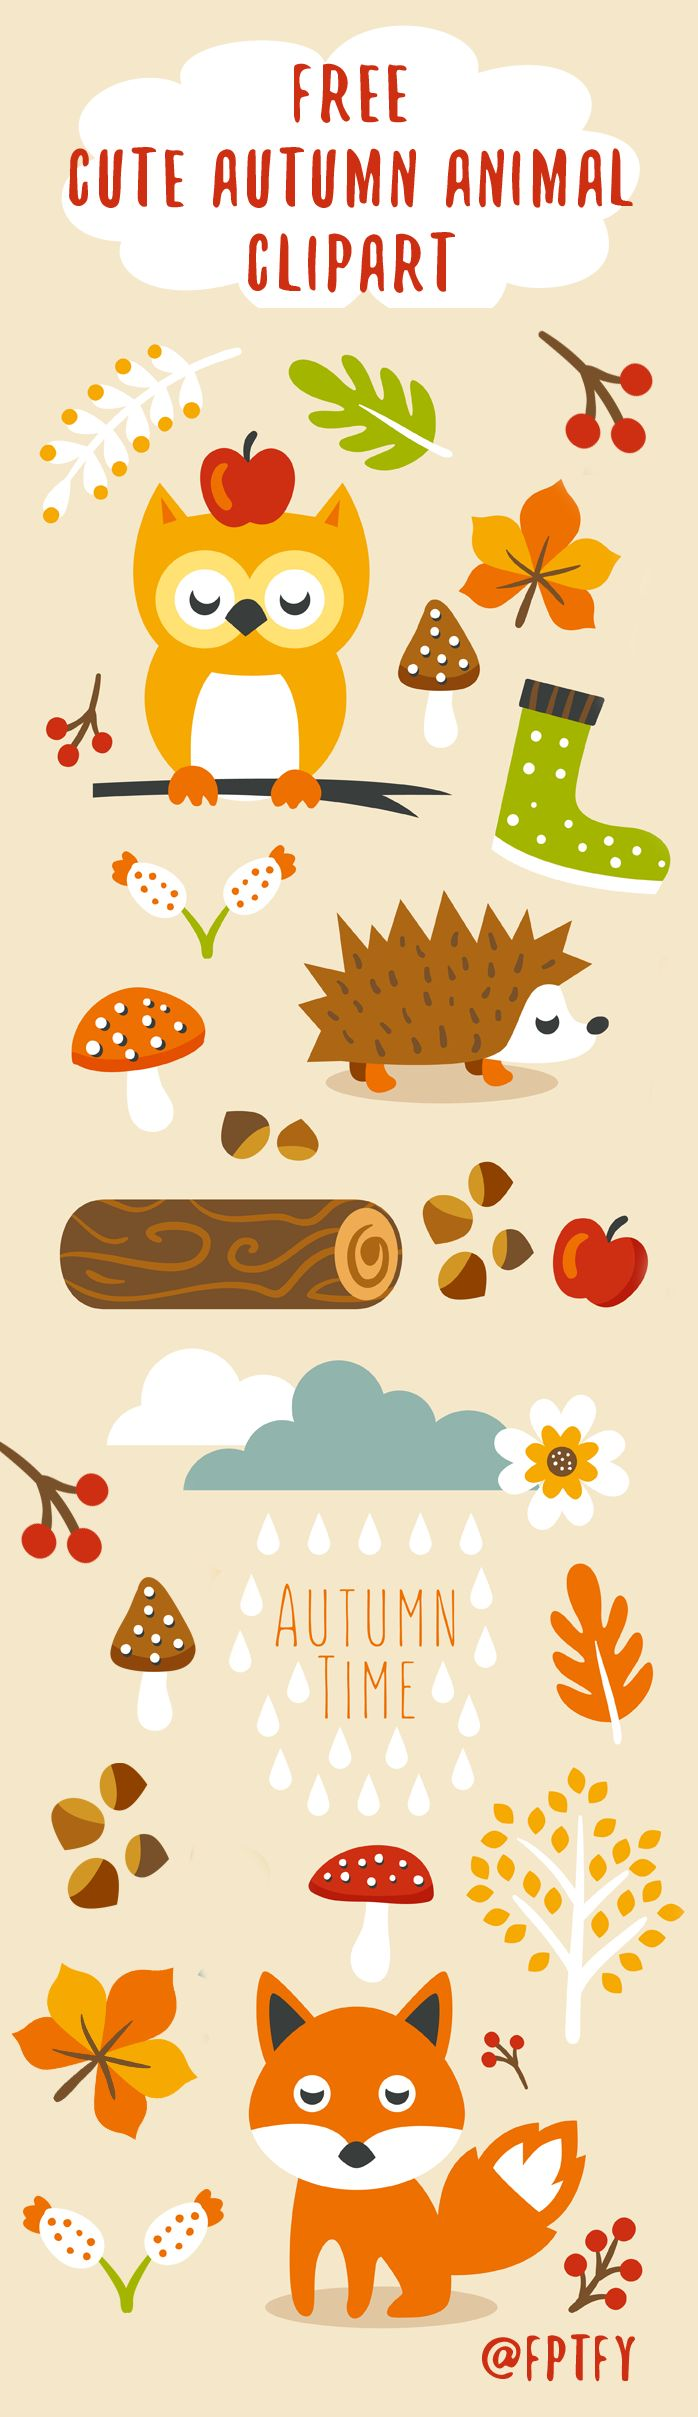 17 Best ideas about Fall Clip Art on Pinterest.